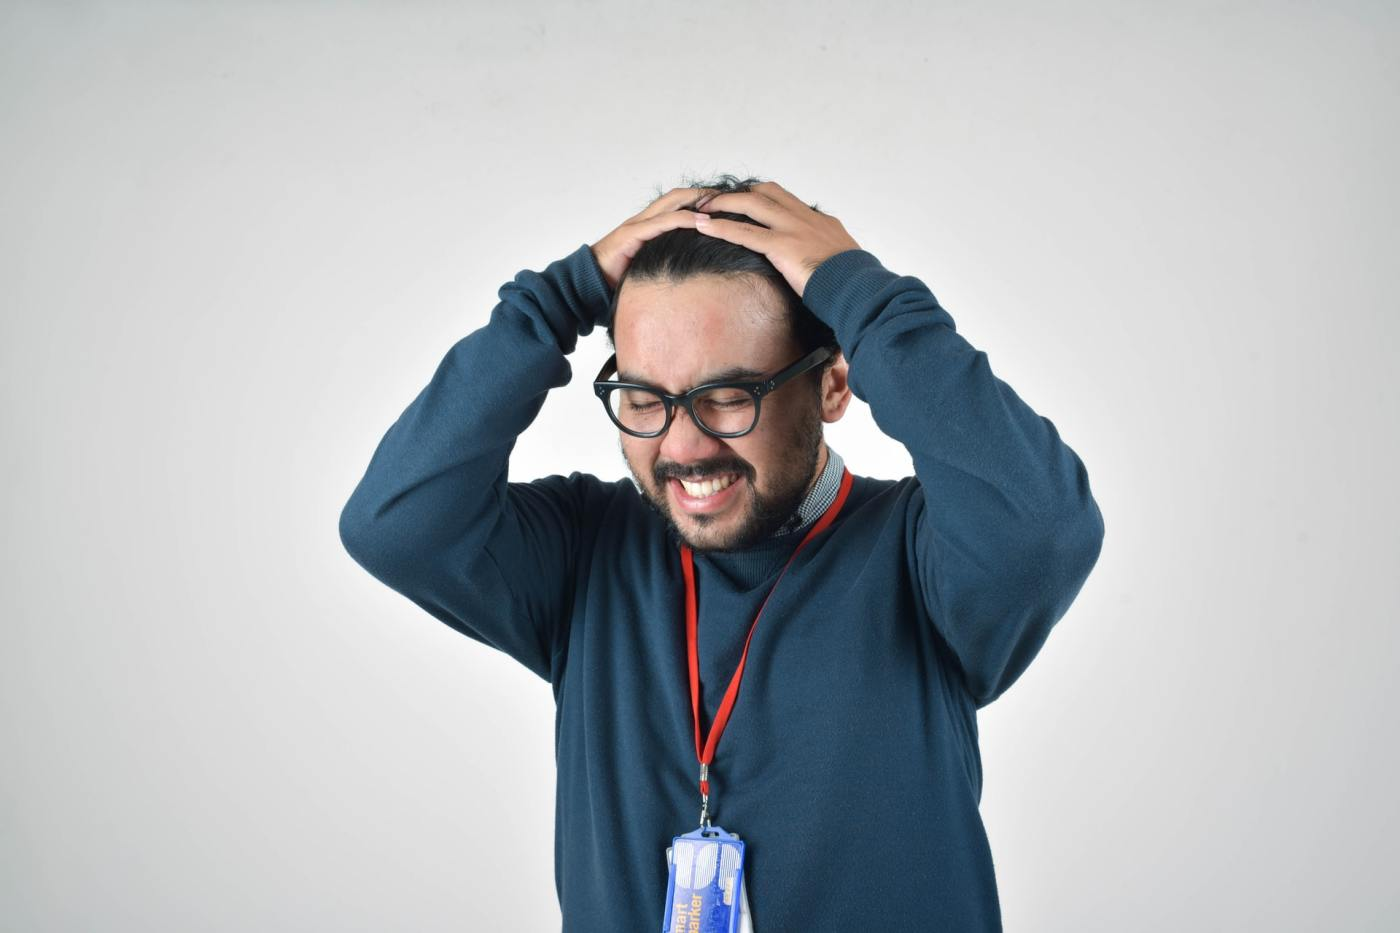 Guy who appears to be frustrated with office coworkers and having to make the tough decision about firing someone